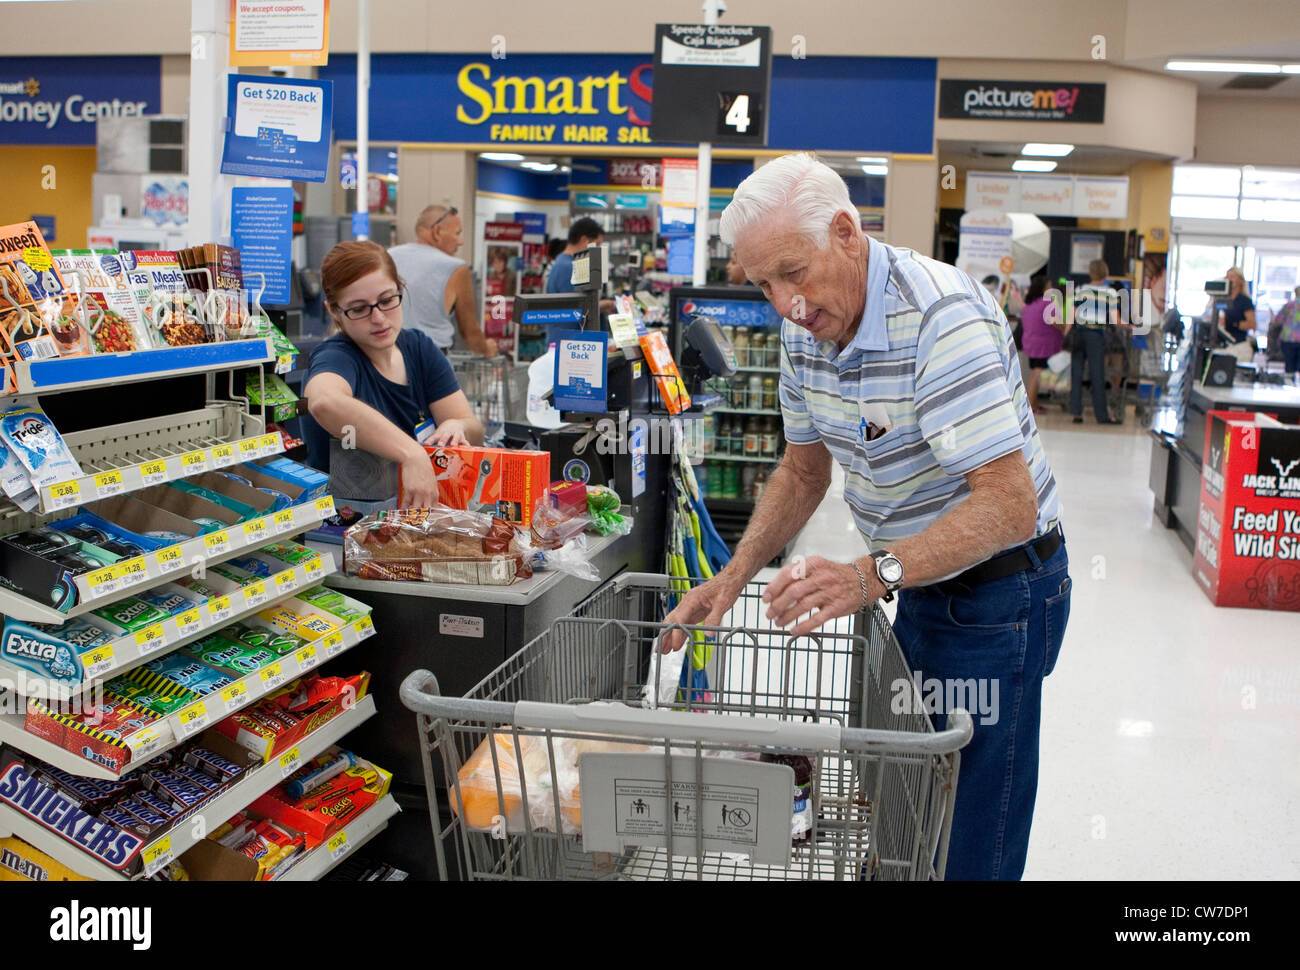 Since many senior discounts are not advertised to the public, our advice to men and women over 55 is to ALWAYS ask a sales associate if that store provides a senior discount. Also, please note that some senior discounts vary by region. That way, you can be sure to get the most bang for your buck.